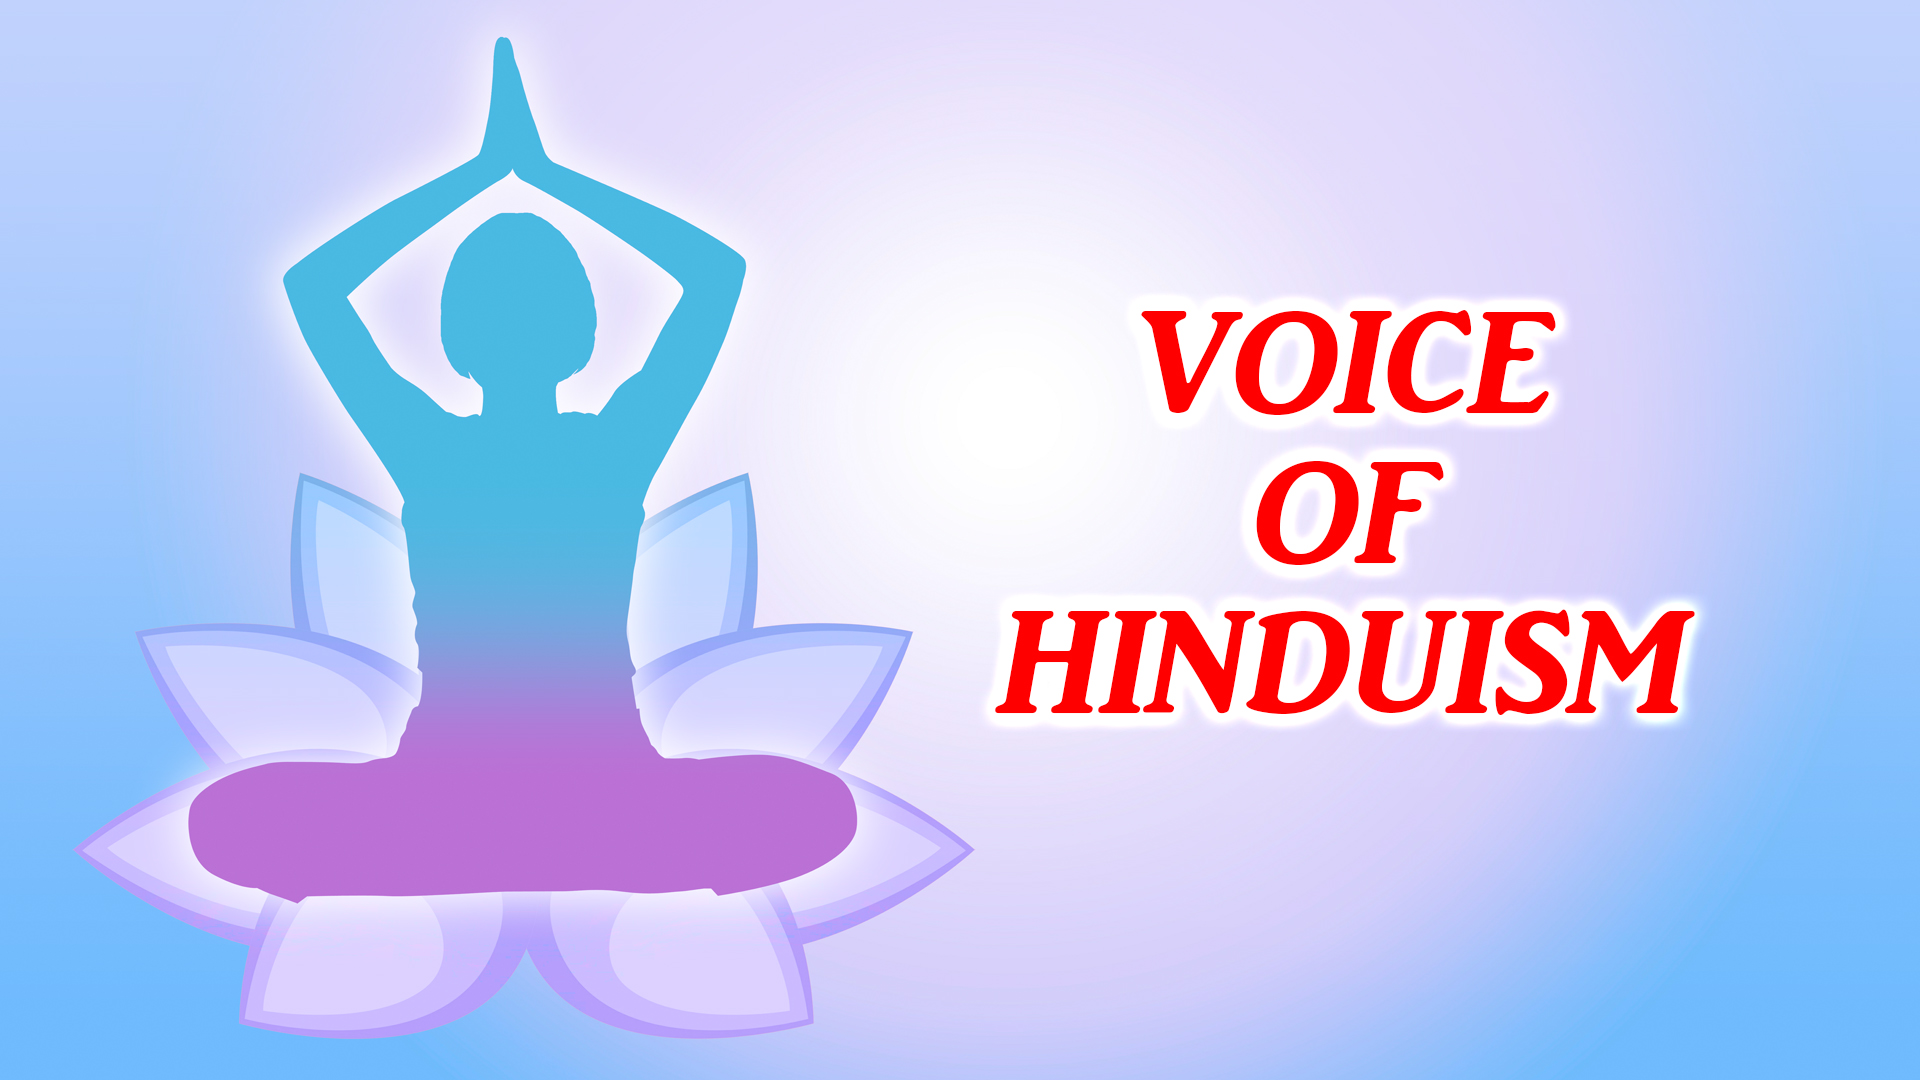 VOICE OF HINDUISM.jpg